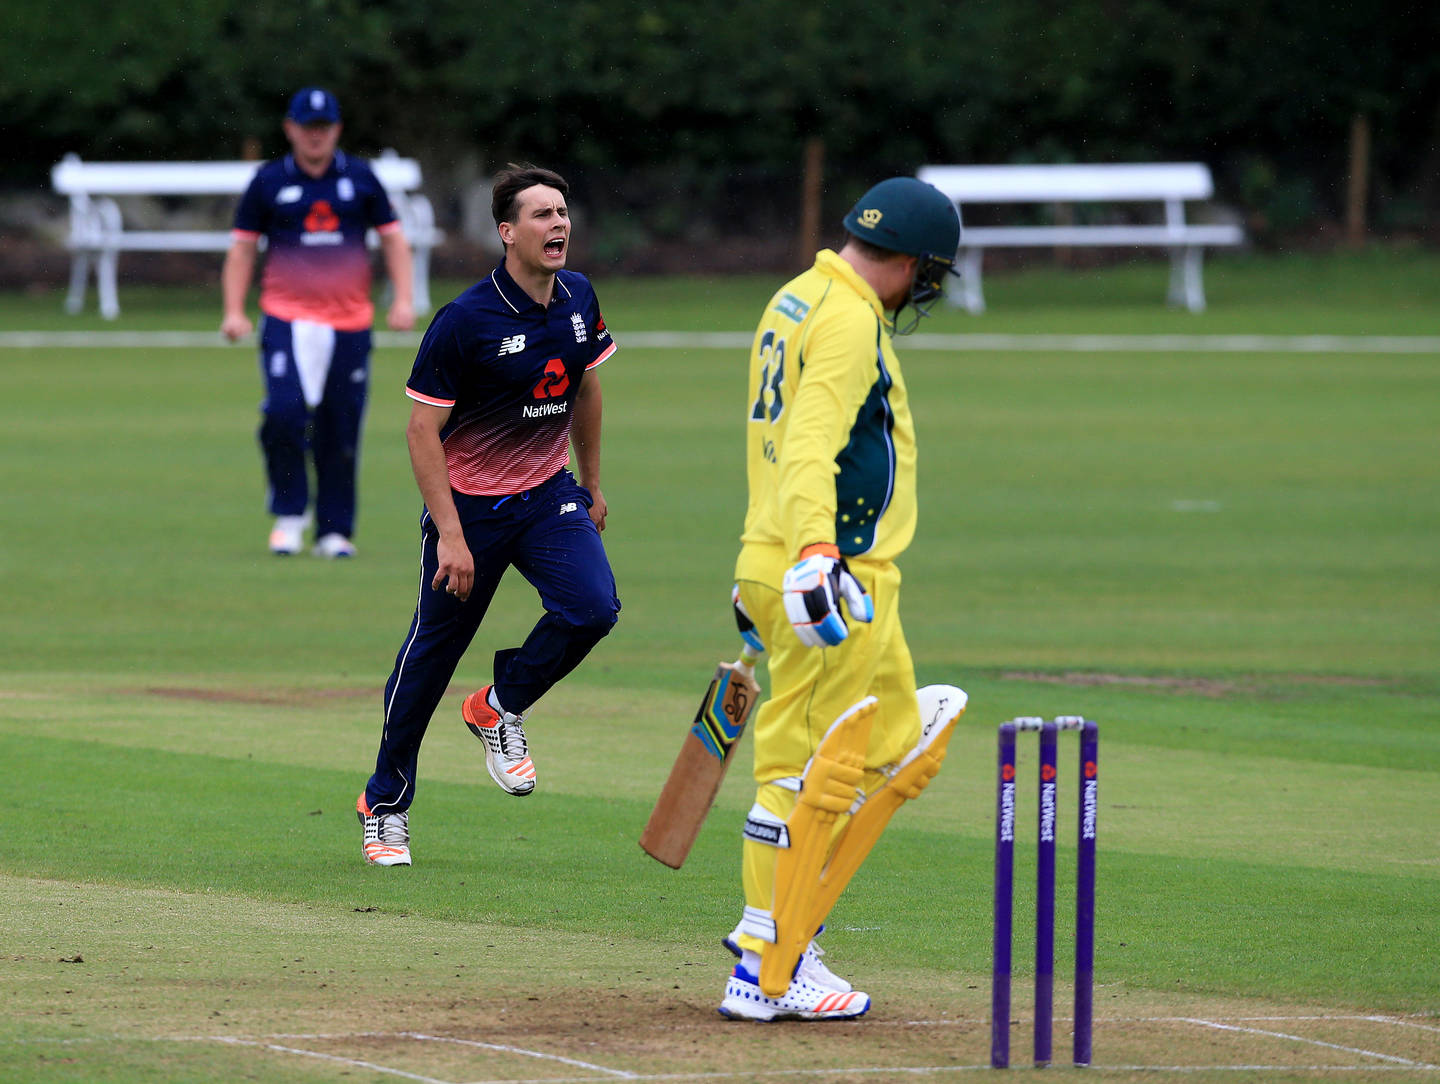 Taylor Young celebrates the wicket of Brett Wilson